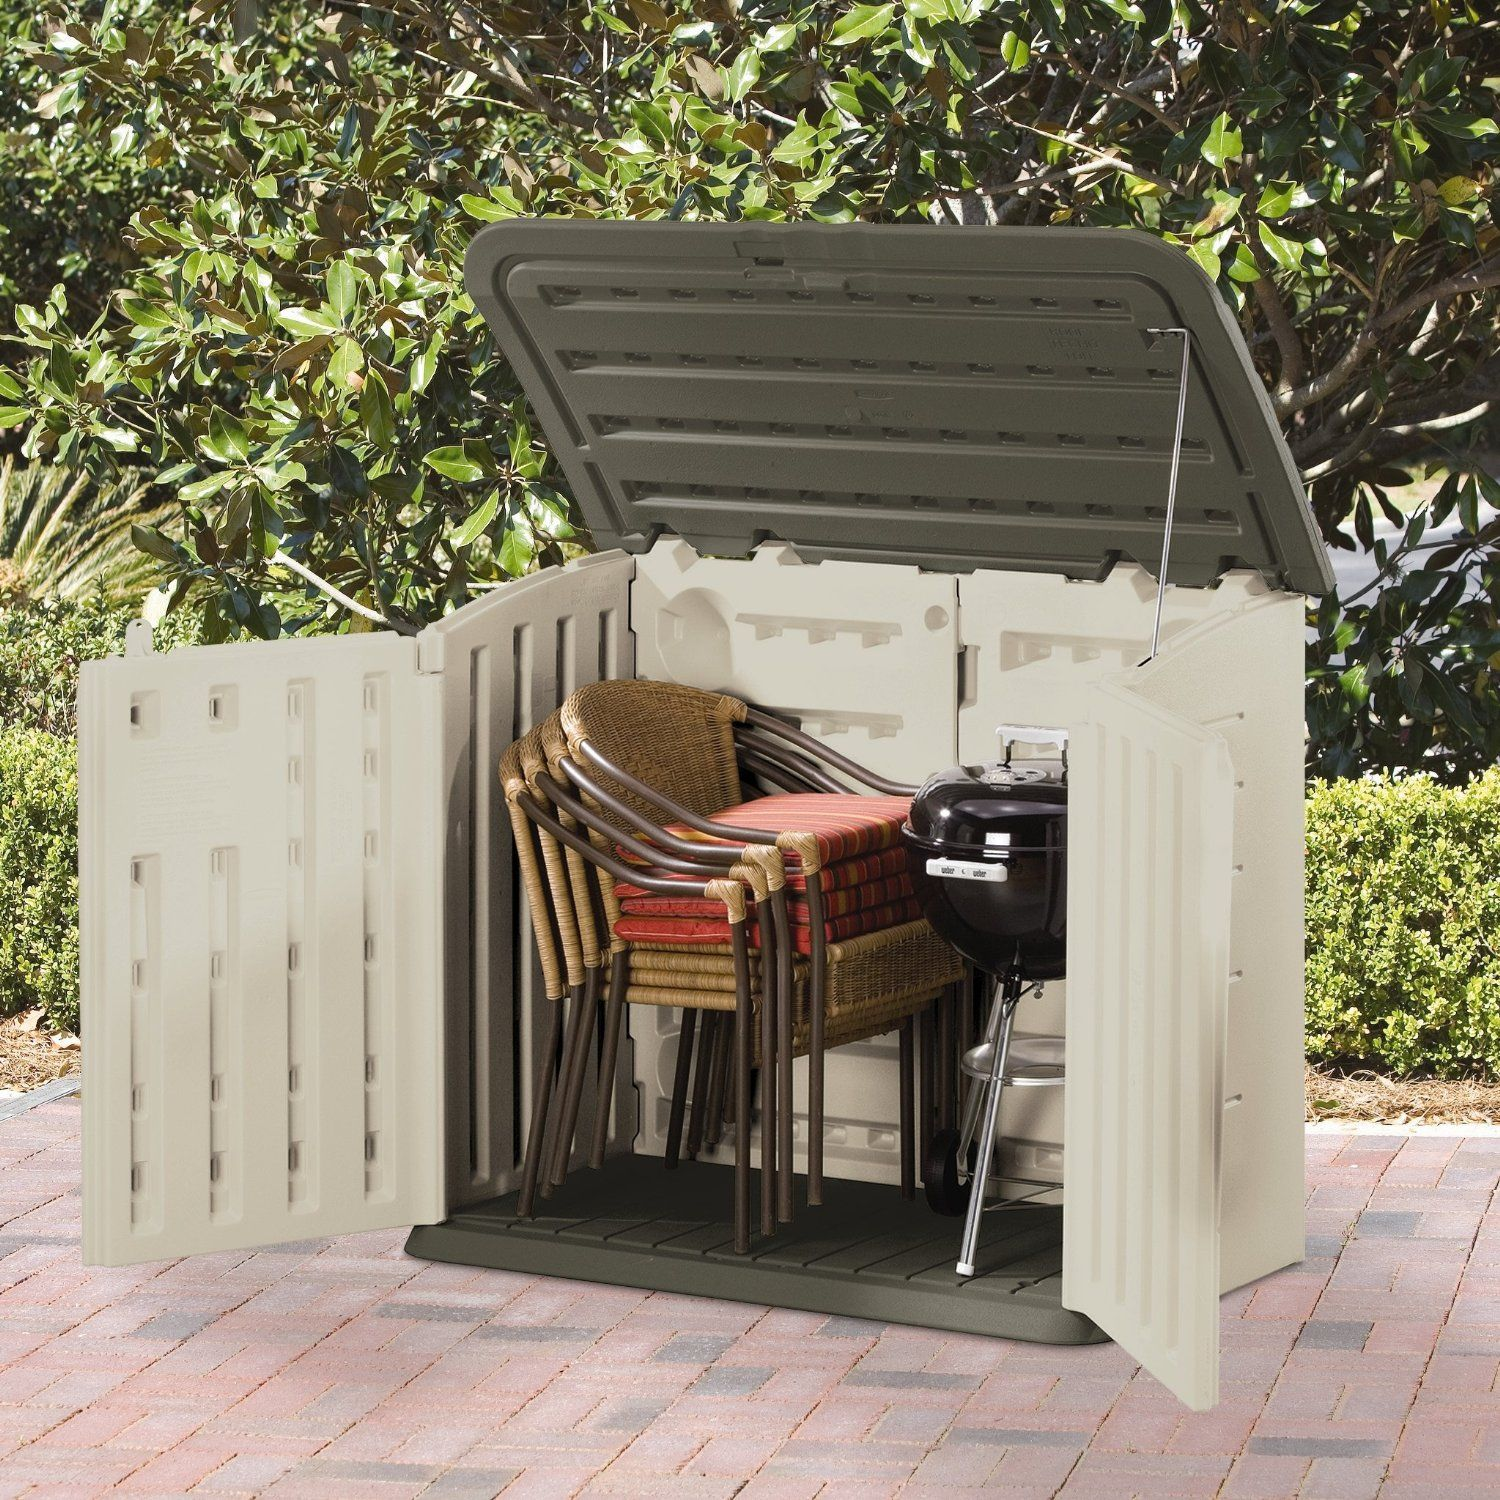 Rubbermaid Plastic Horizontal Outdoor Storage Shed, 32 Cubic Foot. It Is  The Only Part 94